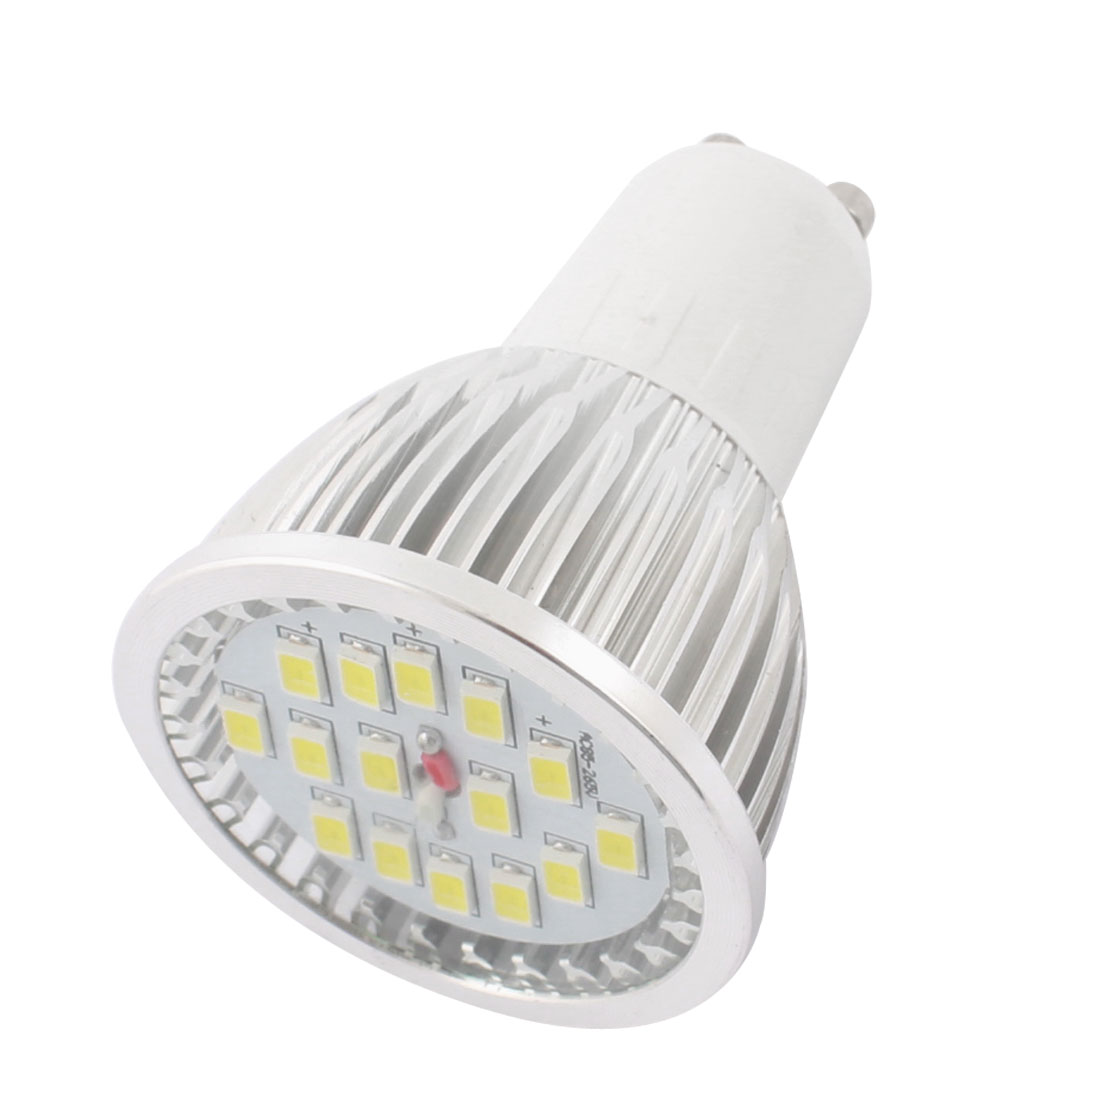 GU10 5730 SMD White Lighting 15 LEDs 3500K 6W Spot Light AC 85-265V